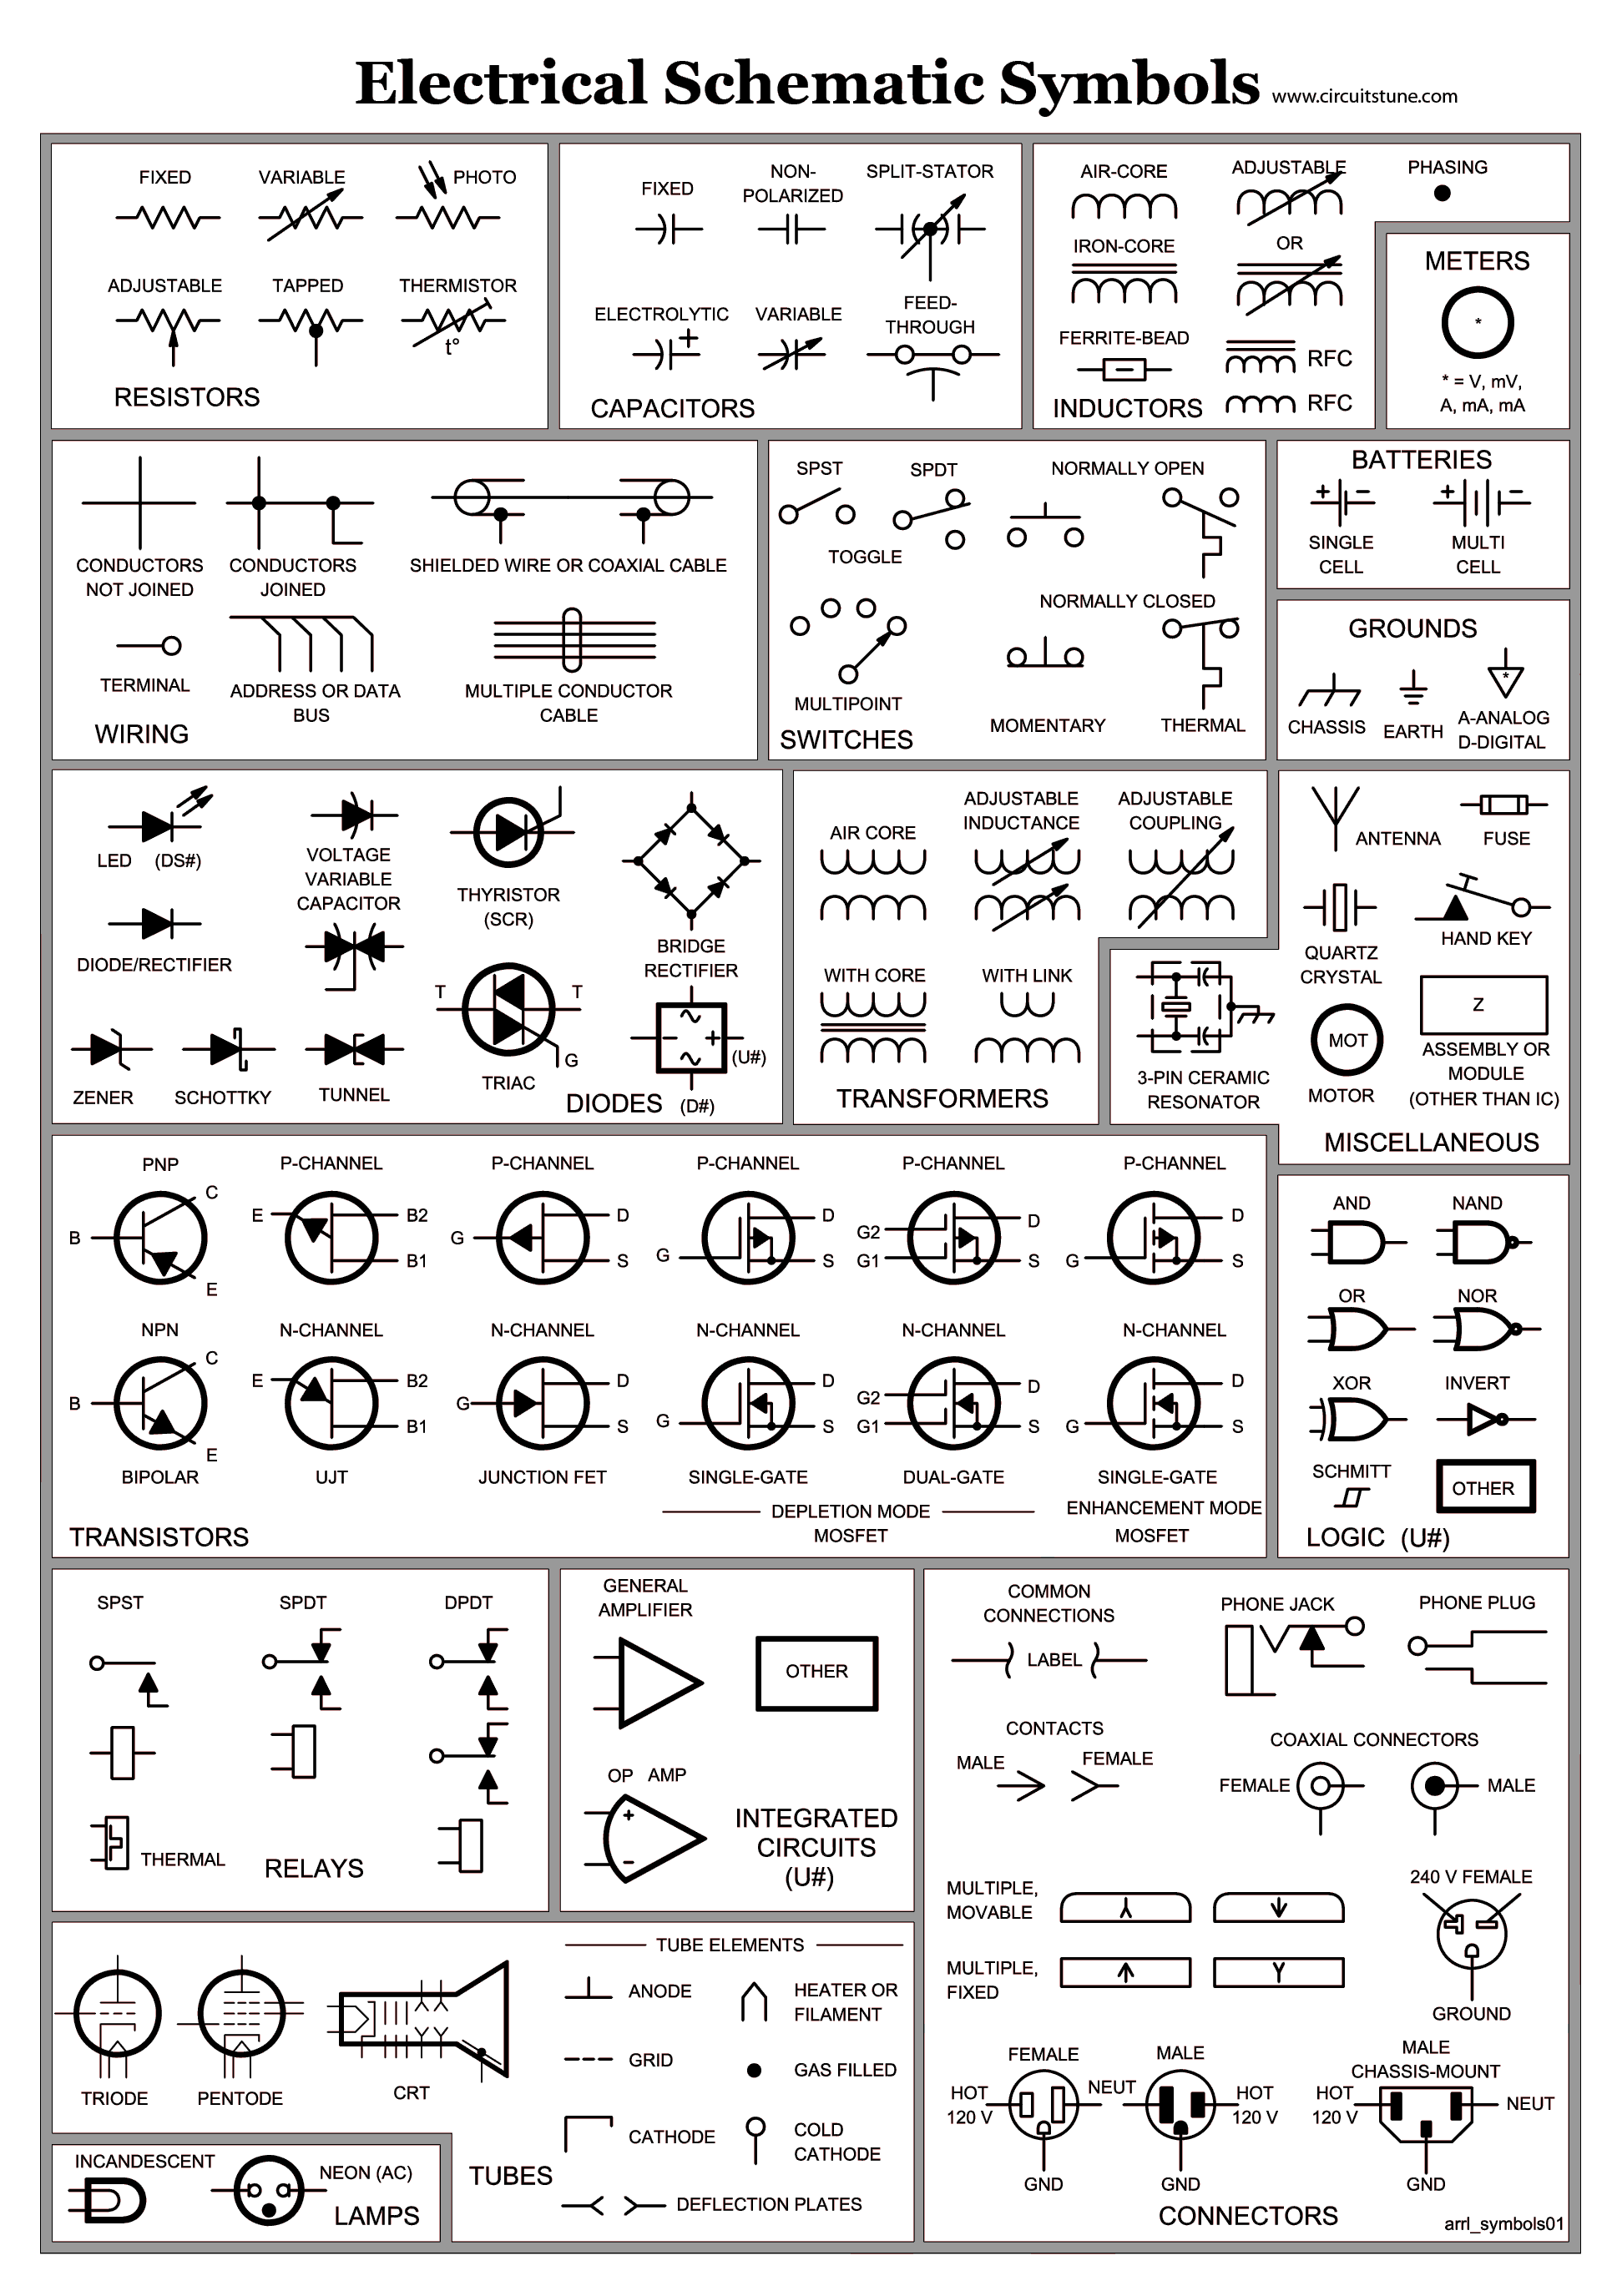 electrical schematic symbols wire diagram symbols automotive wiring rh pinterest com electric circuit diagram symbols electric circuit diagram symbols purpose games